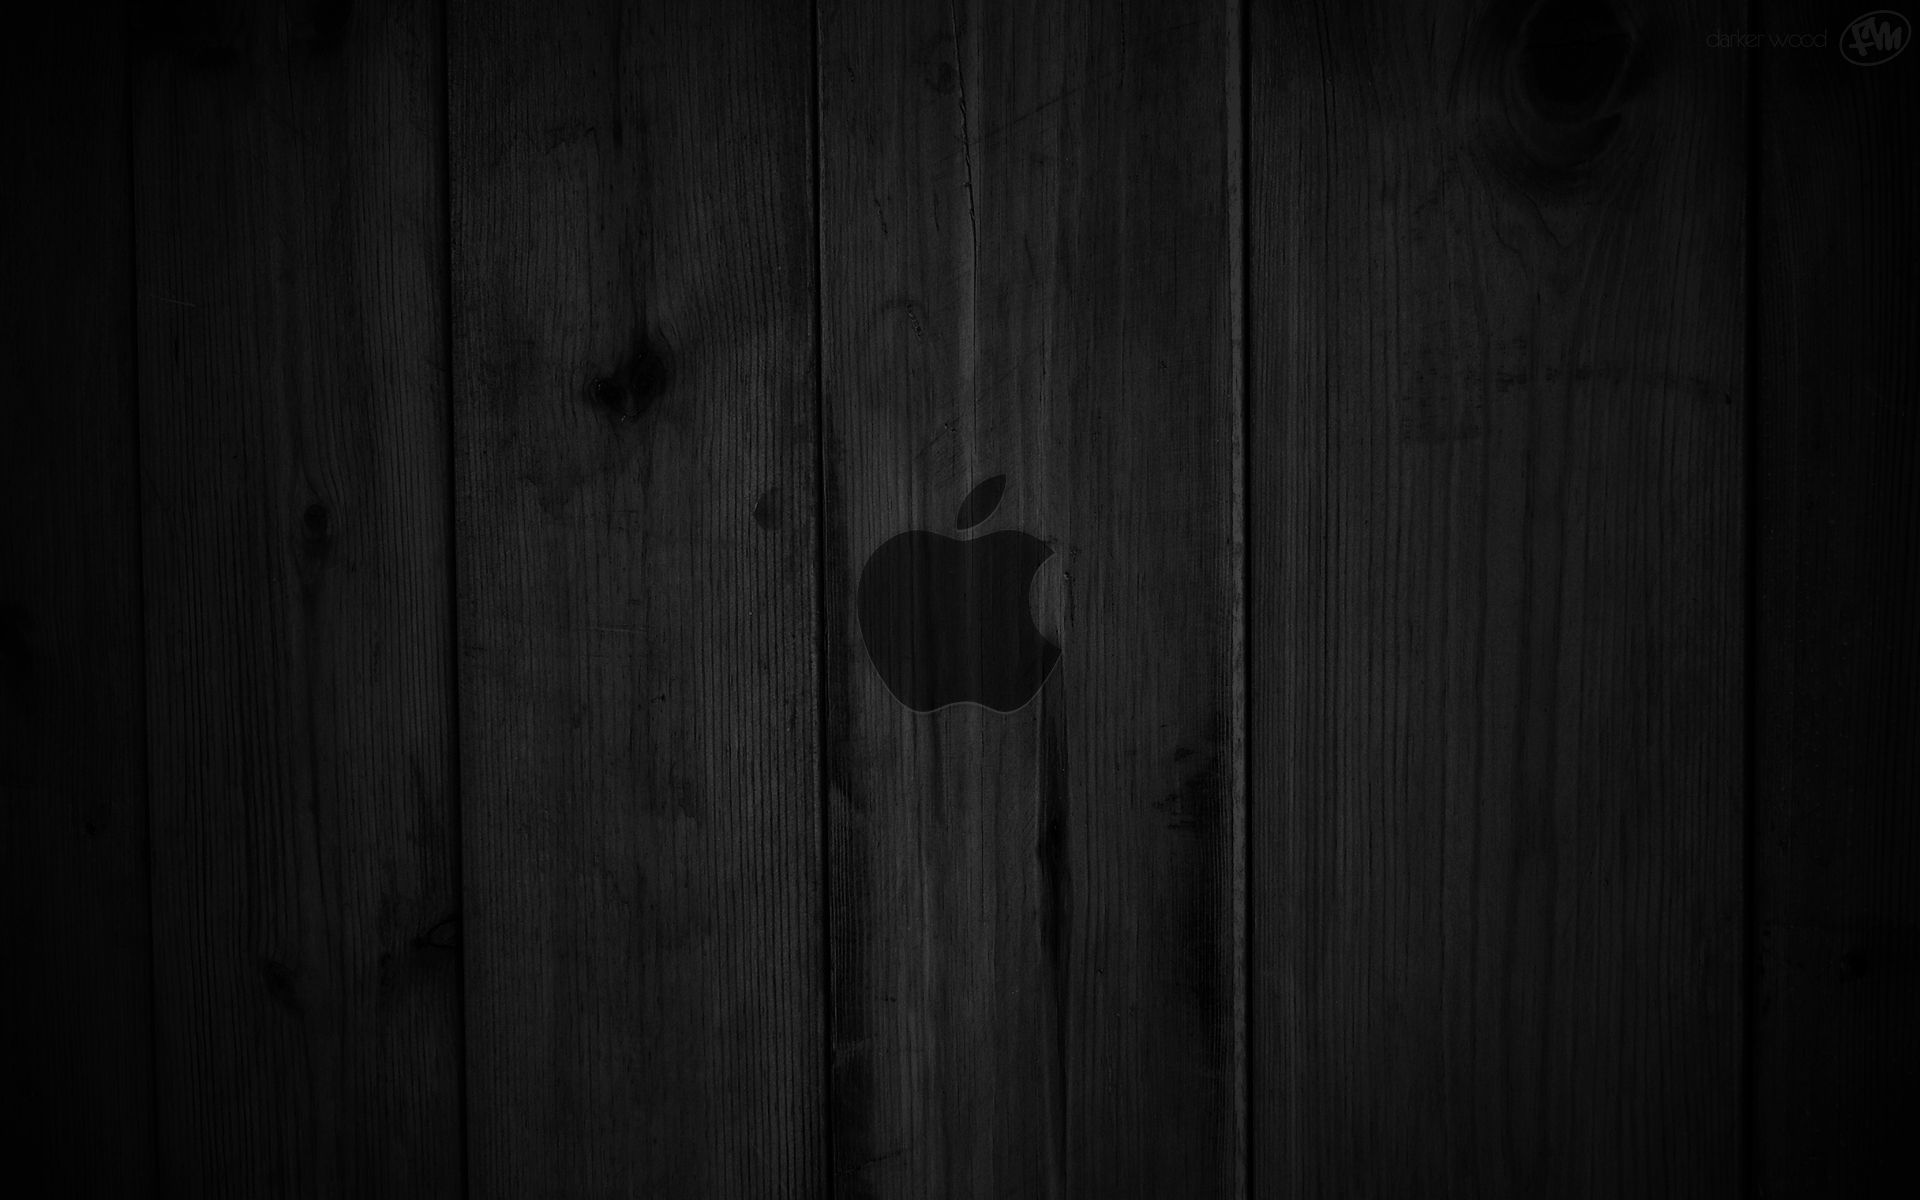 Hd wallpaper for mac - Search Results For Hi Res Wallpaper For Mac Adorable Wallpapers